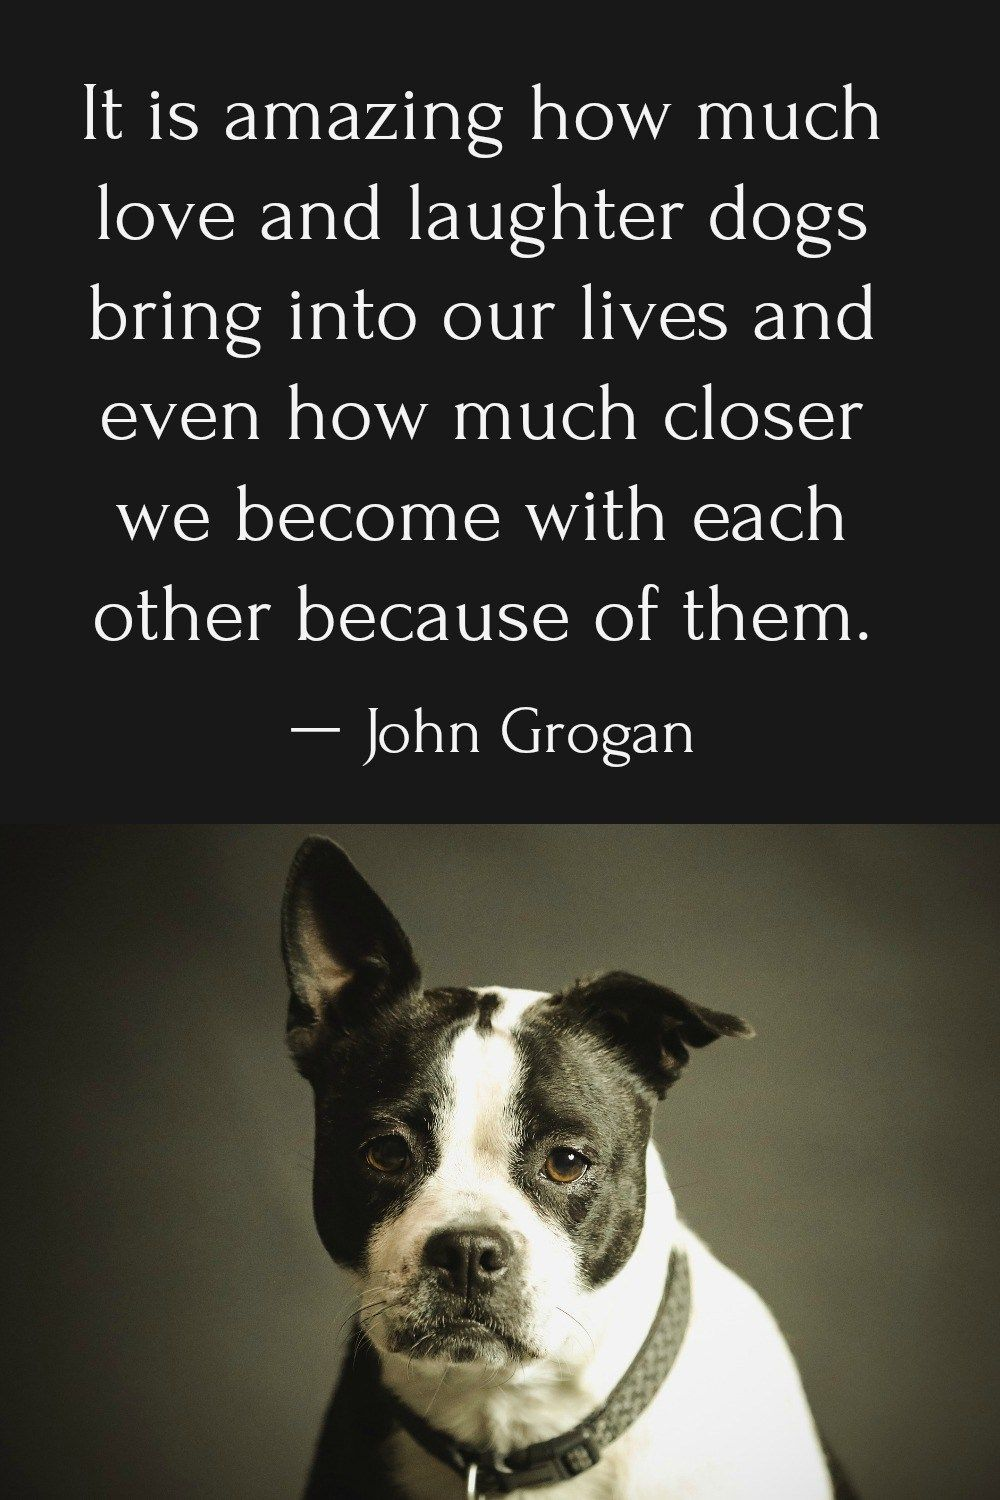 Dog Quotes A Snorkey Day Pets And Pet Care Pinterest Dog